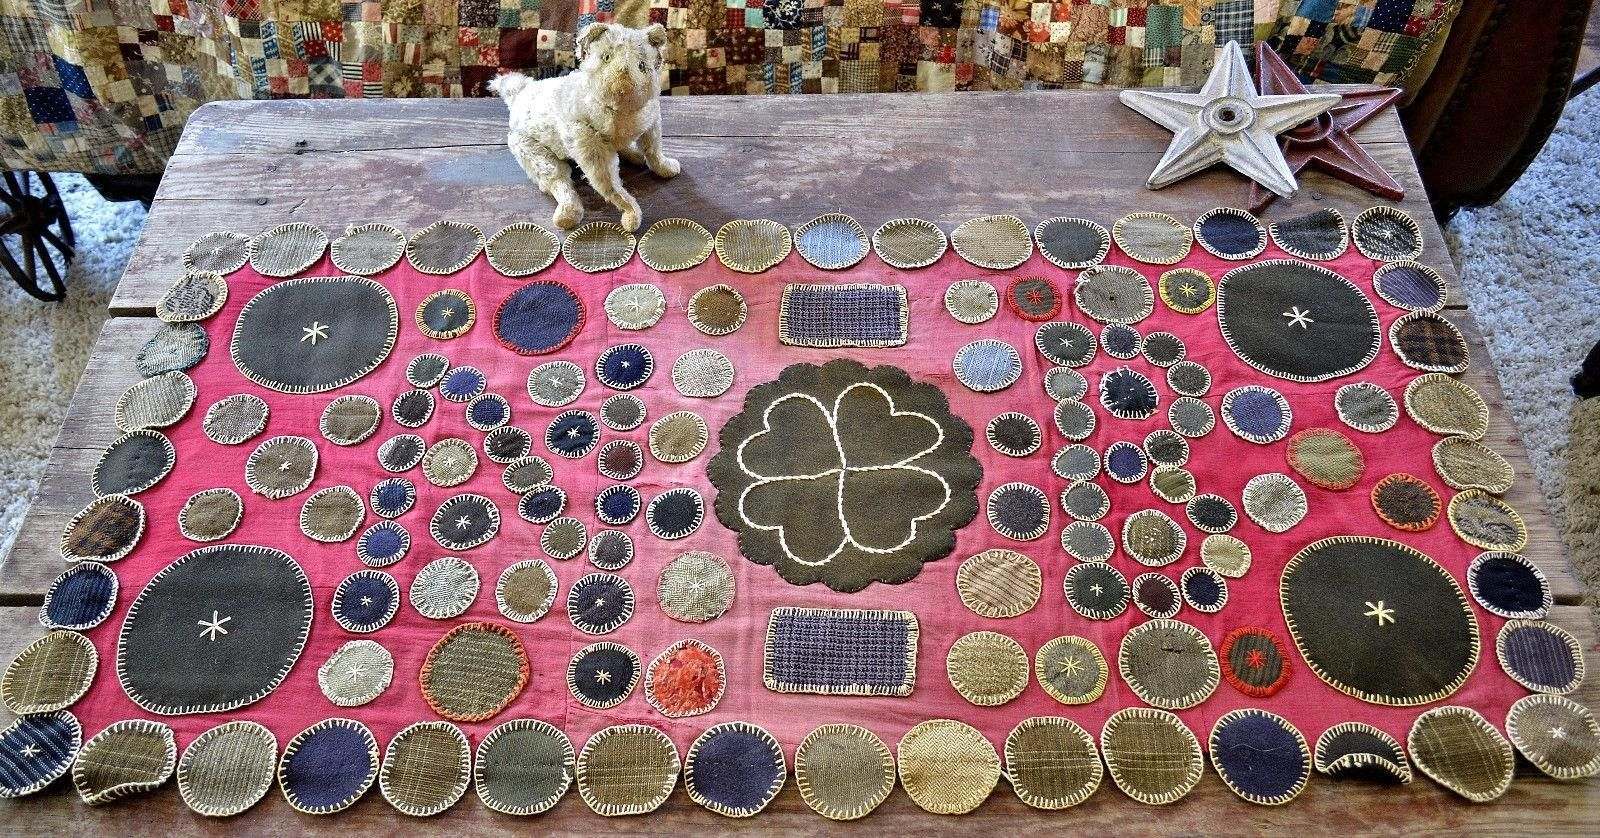 Here is an antique handmade folk art penny rug. The rug is worked on plum cotton cloth with wool circles and shapes which form initials. The backing is woven and there are early patches and repair. T